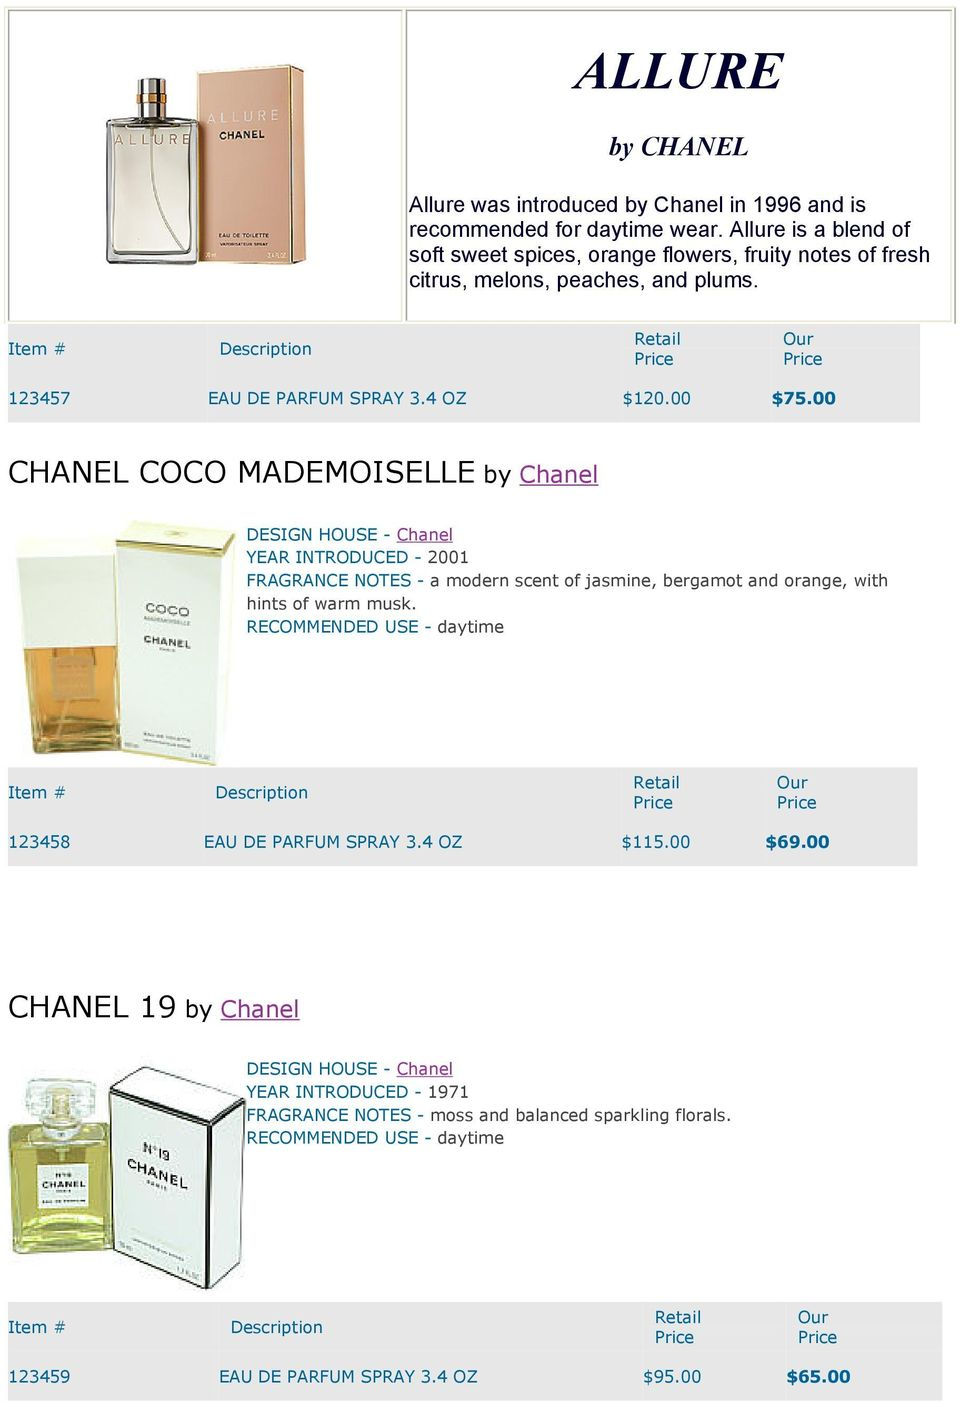 00 CHANEL COCO MADEMOISELLE by Chanel DESIGN HOUSE - Chanel YEAR INTRODUCED - 2001 FRAGRANCE NOTES - a modern scent of jasmine, bergamot and orange, with hints